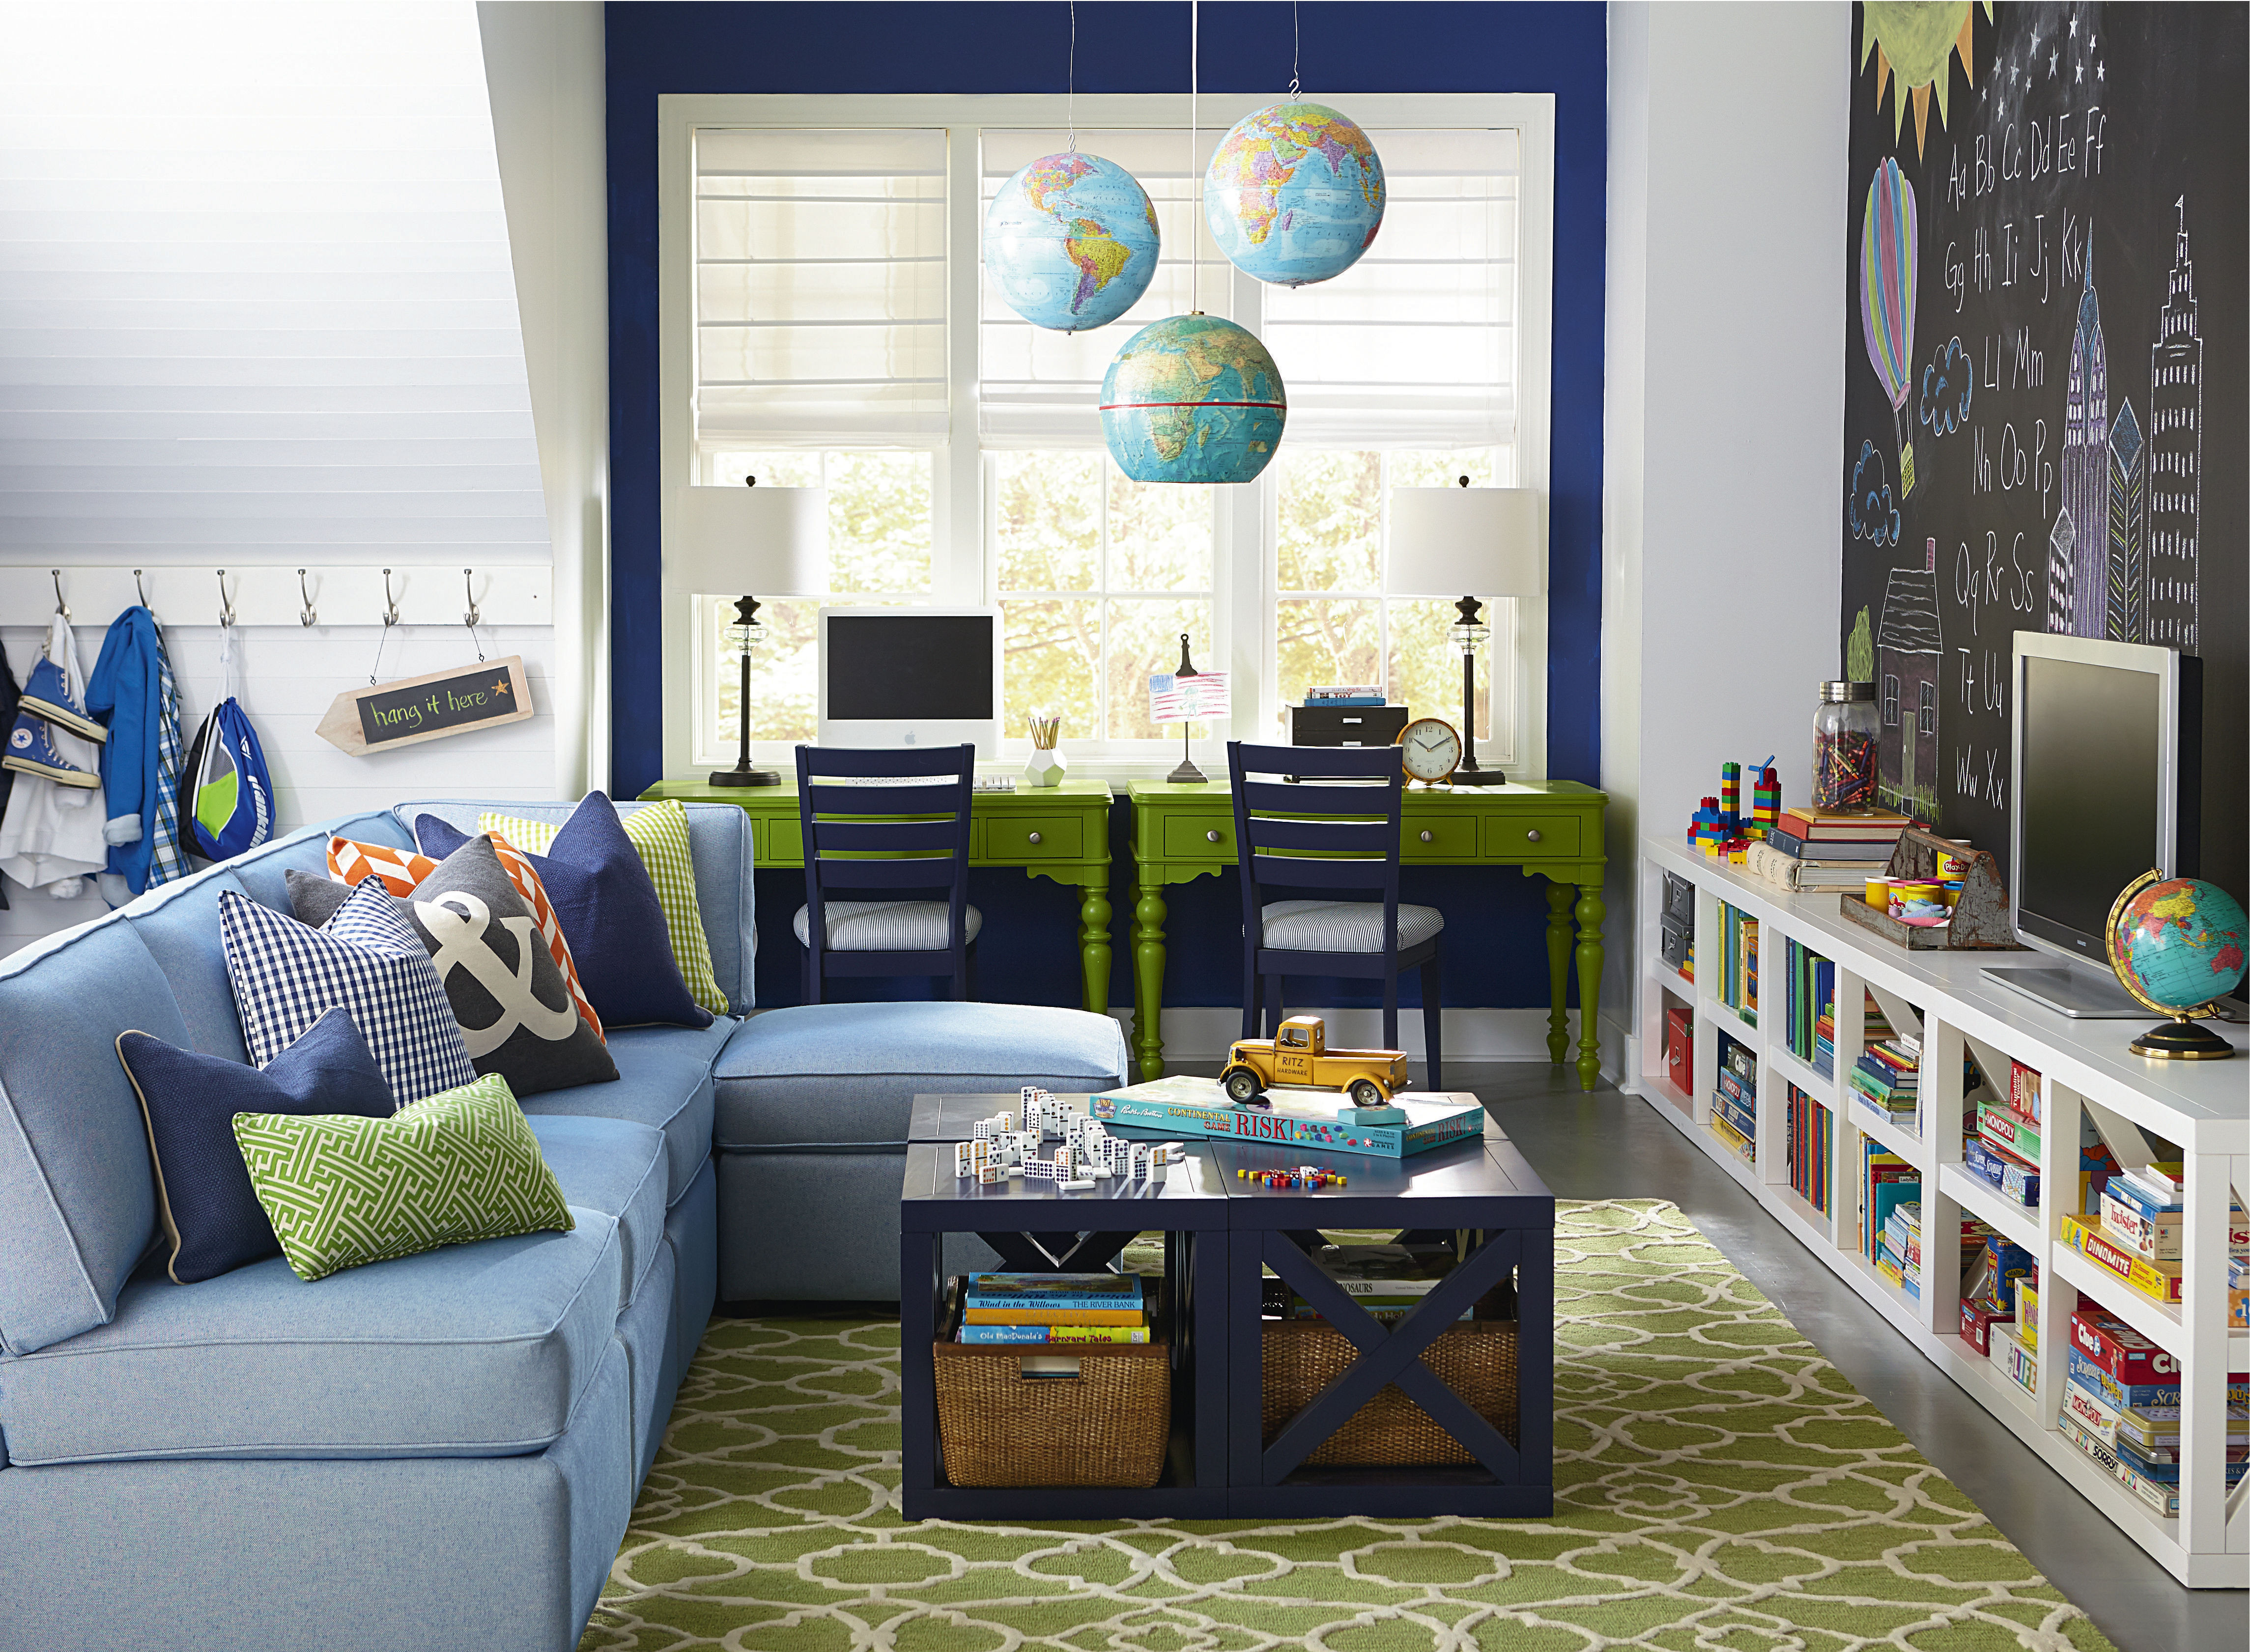 Best ideas about Tv For Kids Room . Save or Pin Getting Your Home in Shape Now.